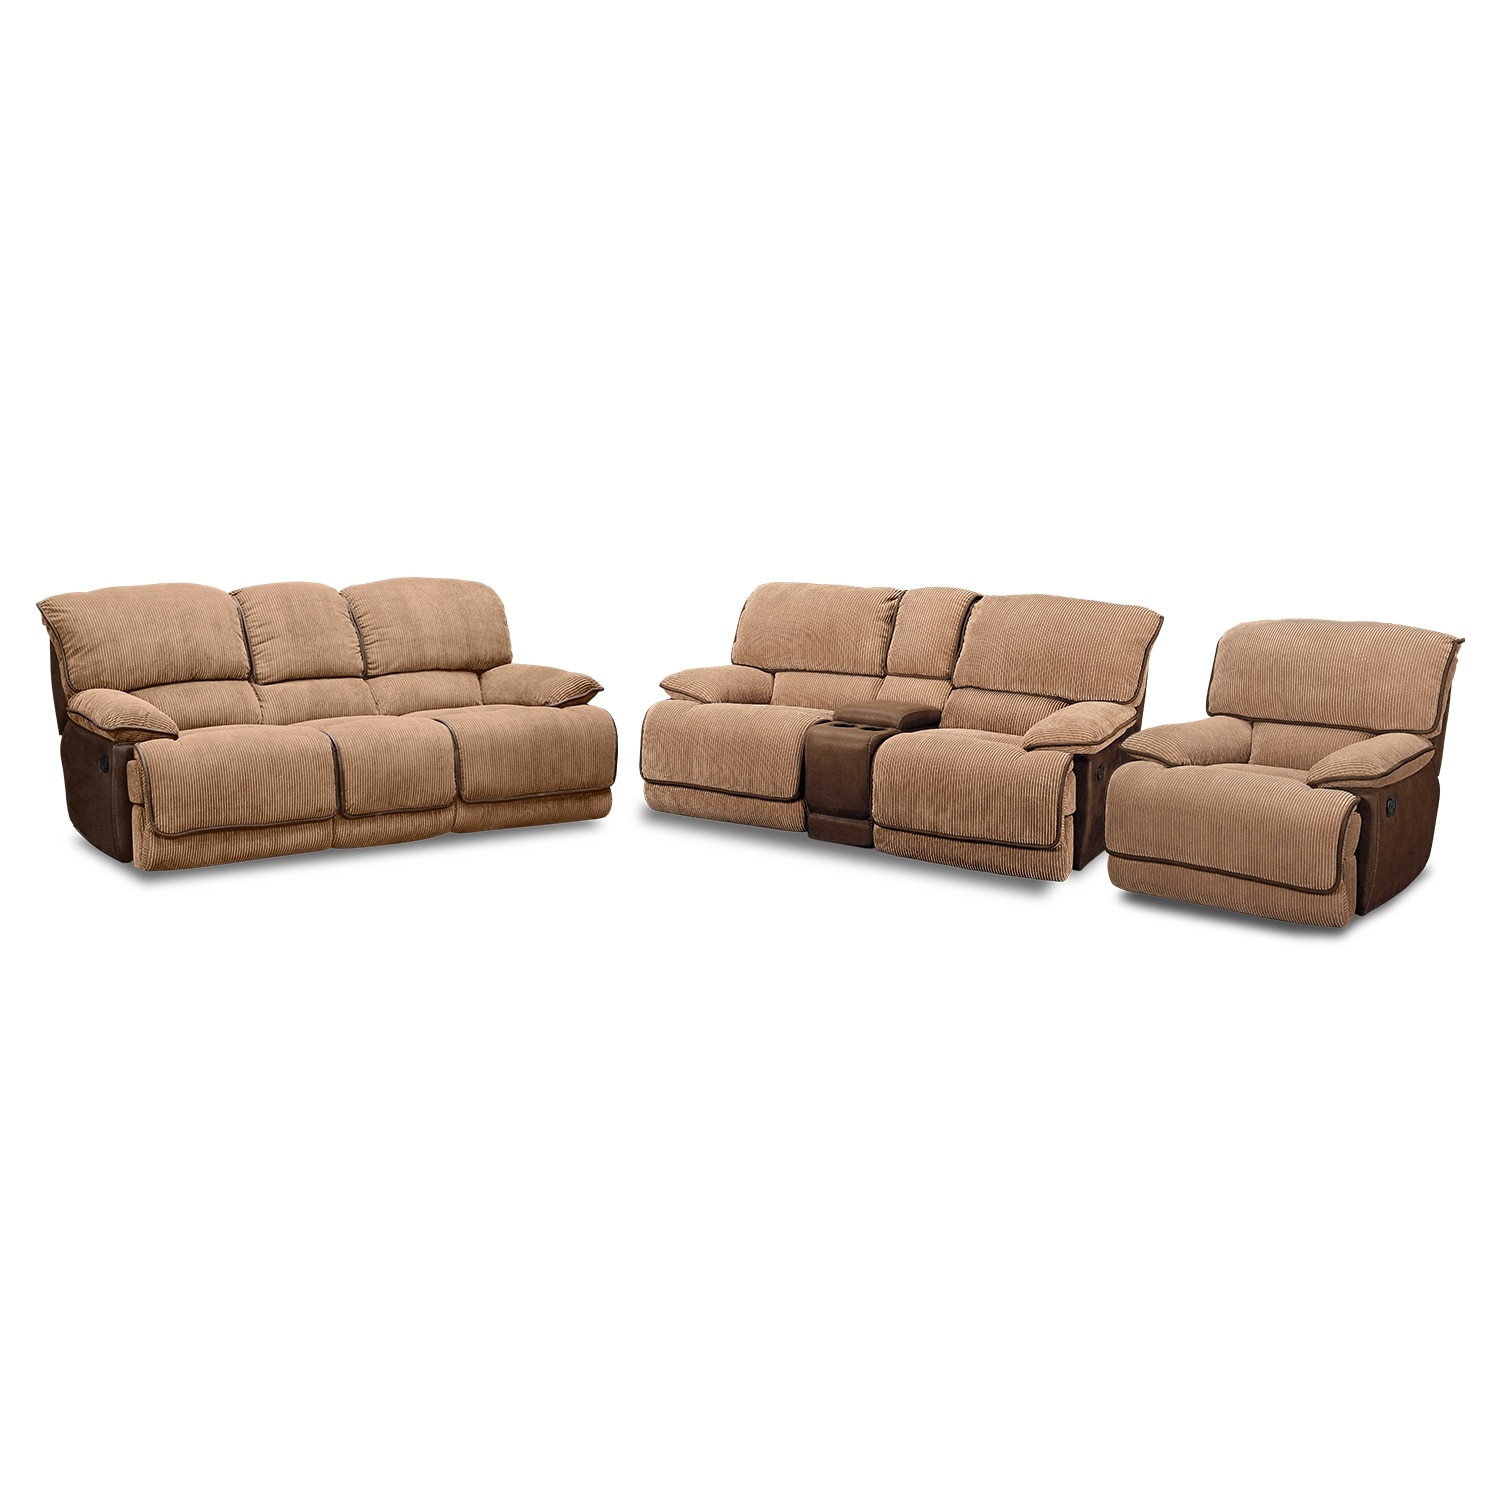 Laguna 3 Pc. Reclining Living Room